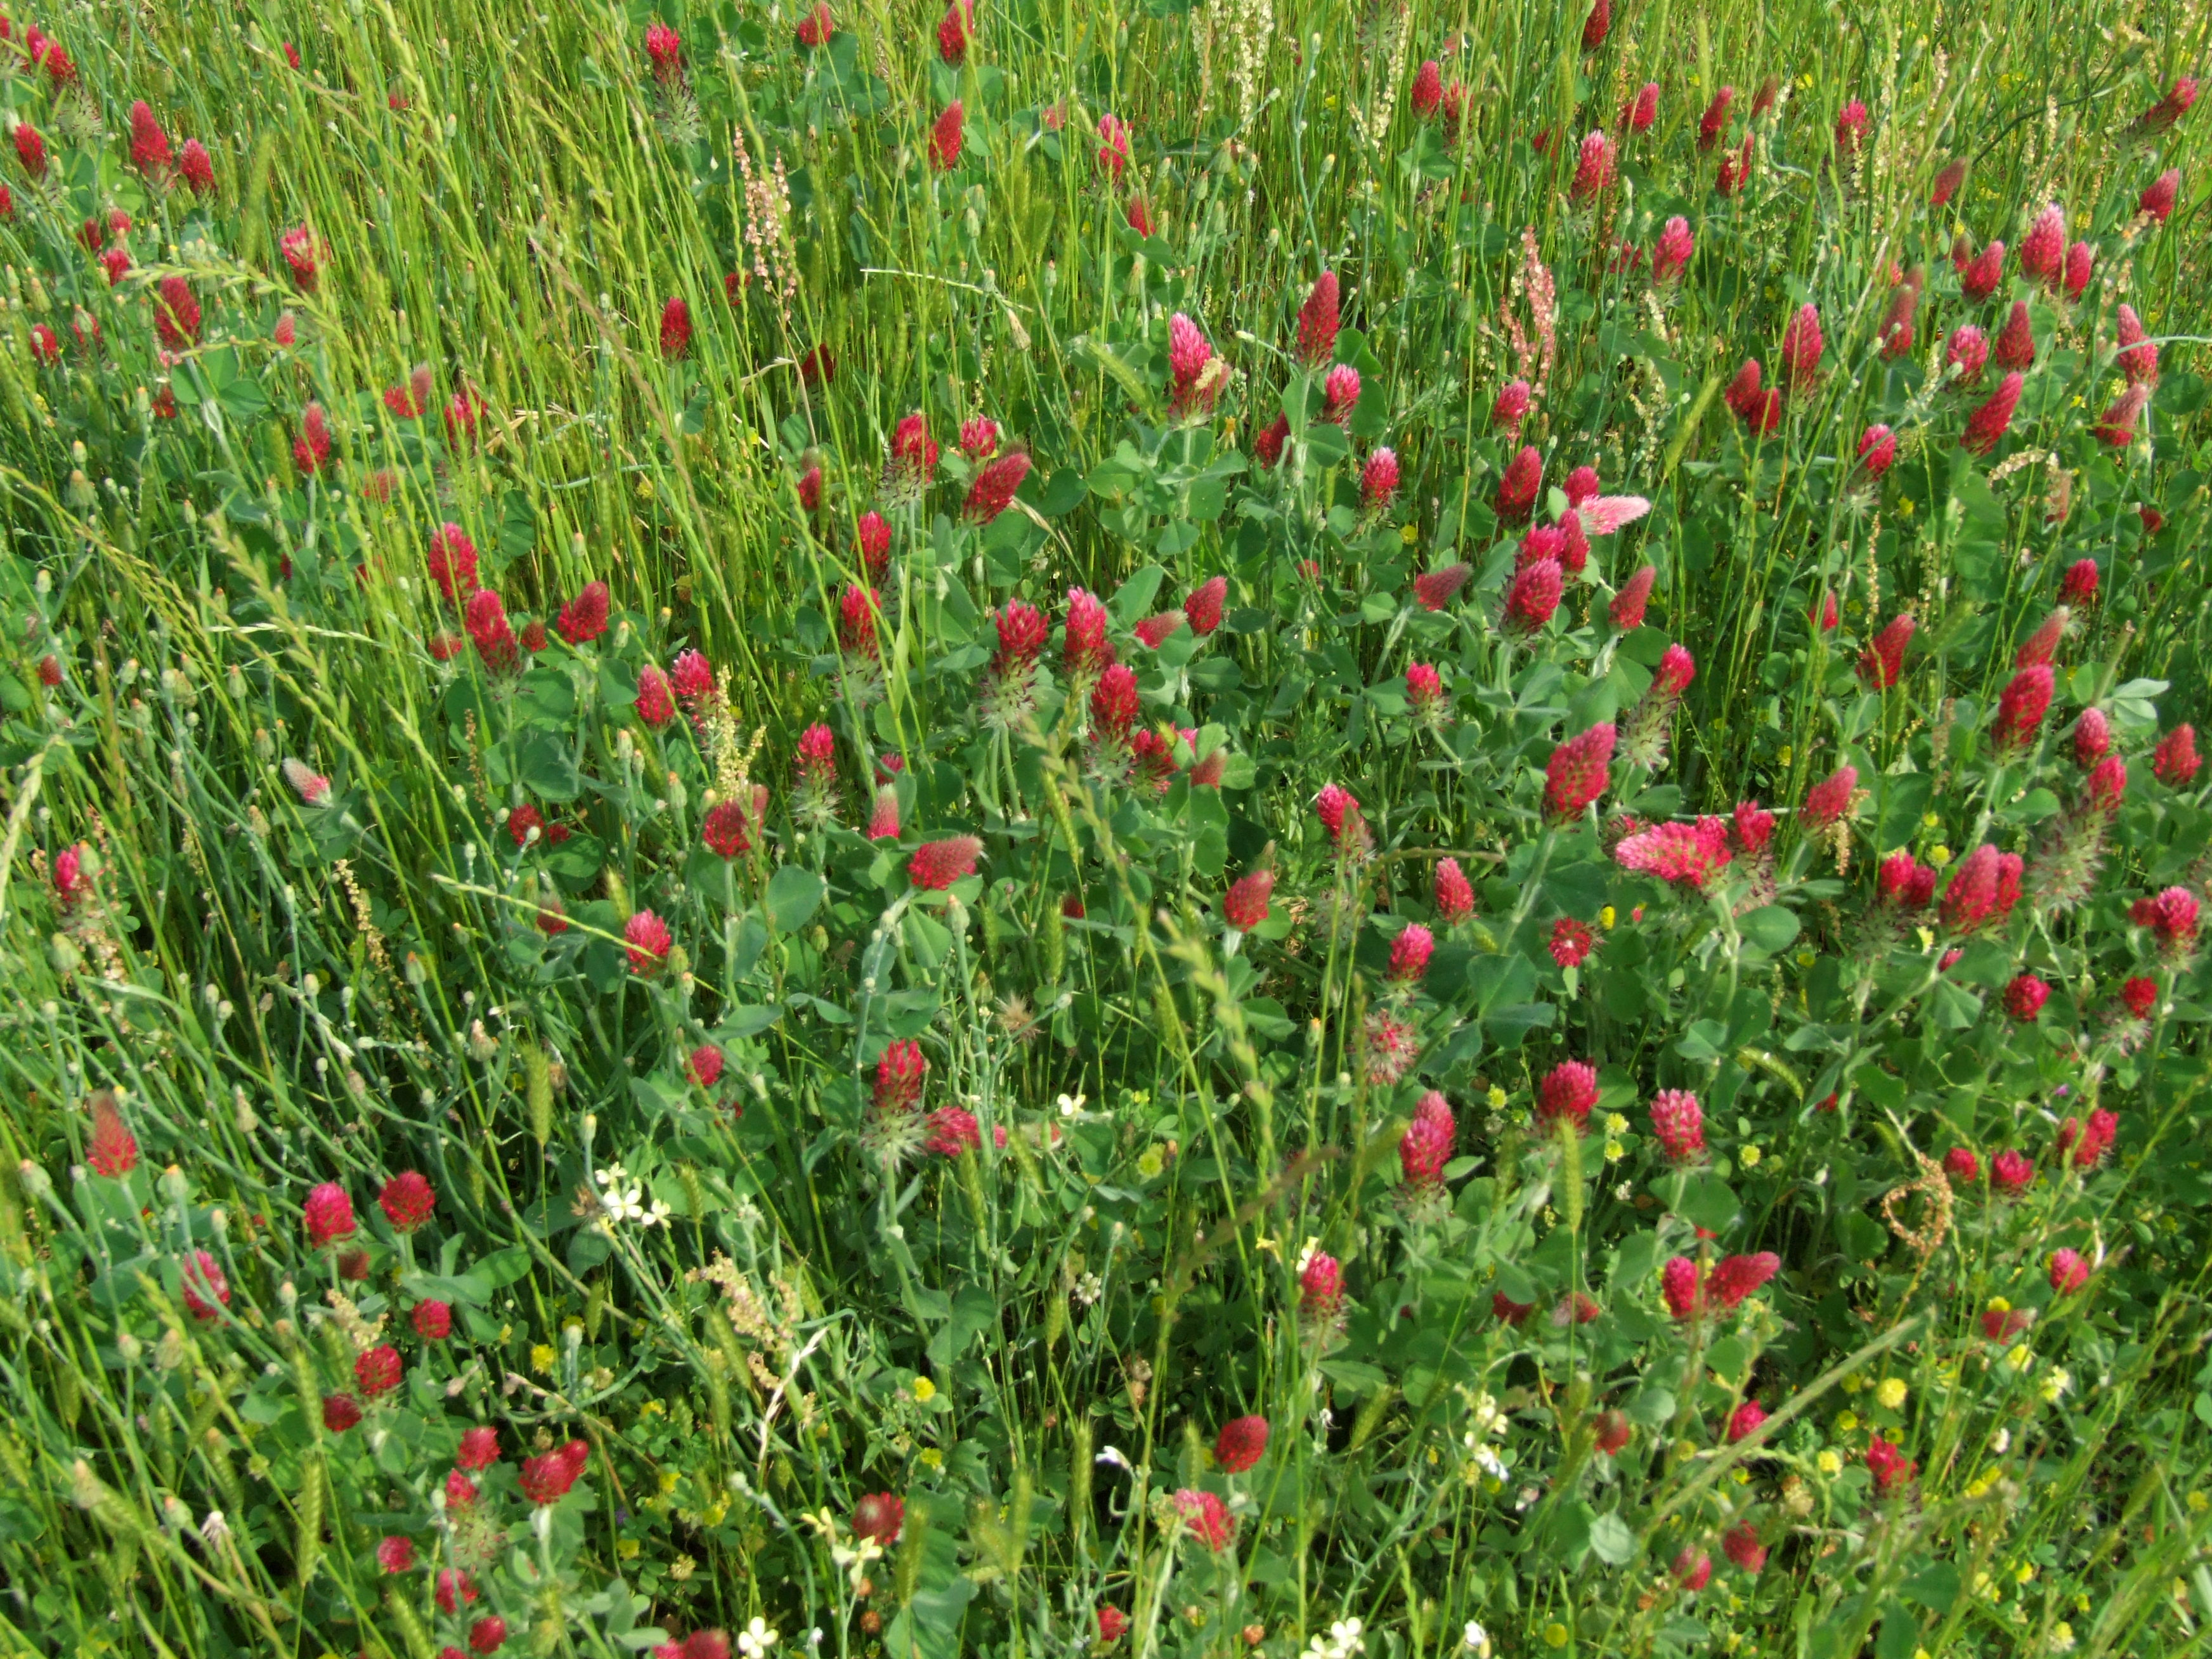 A field of red clover.